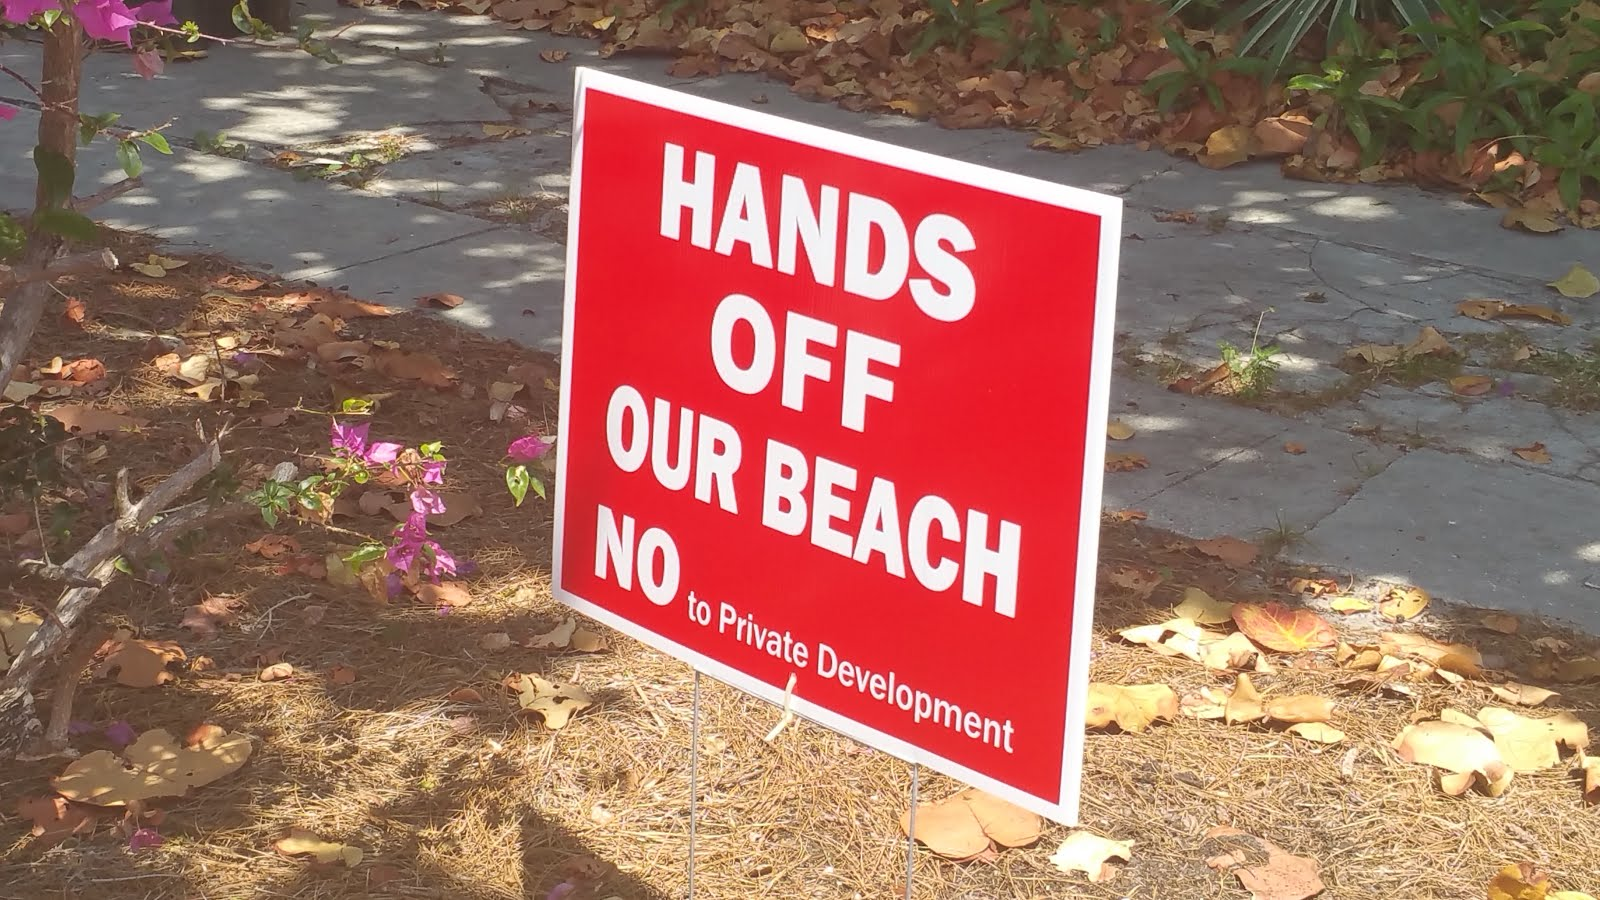 Is City selling our beach? Of course not.